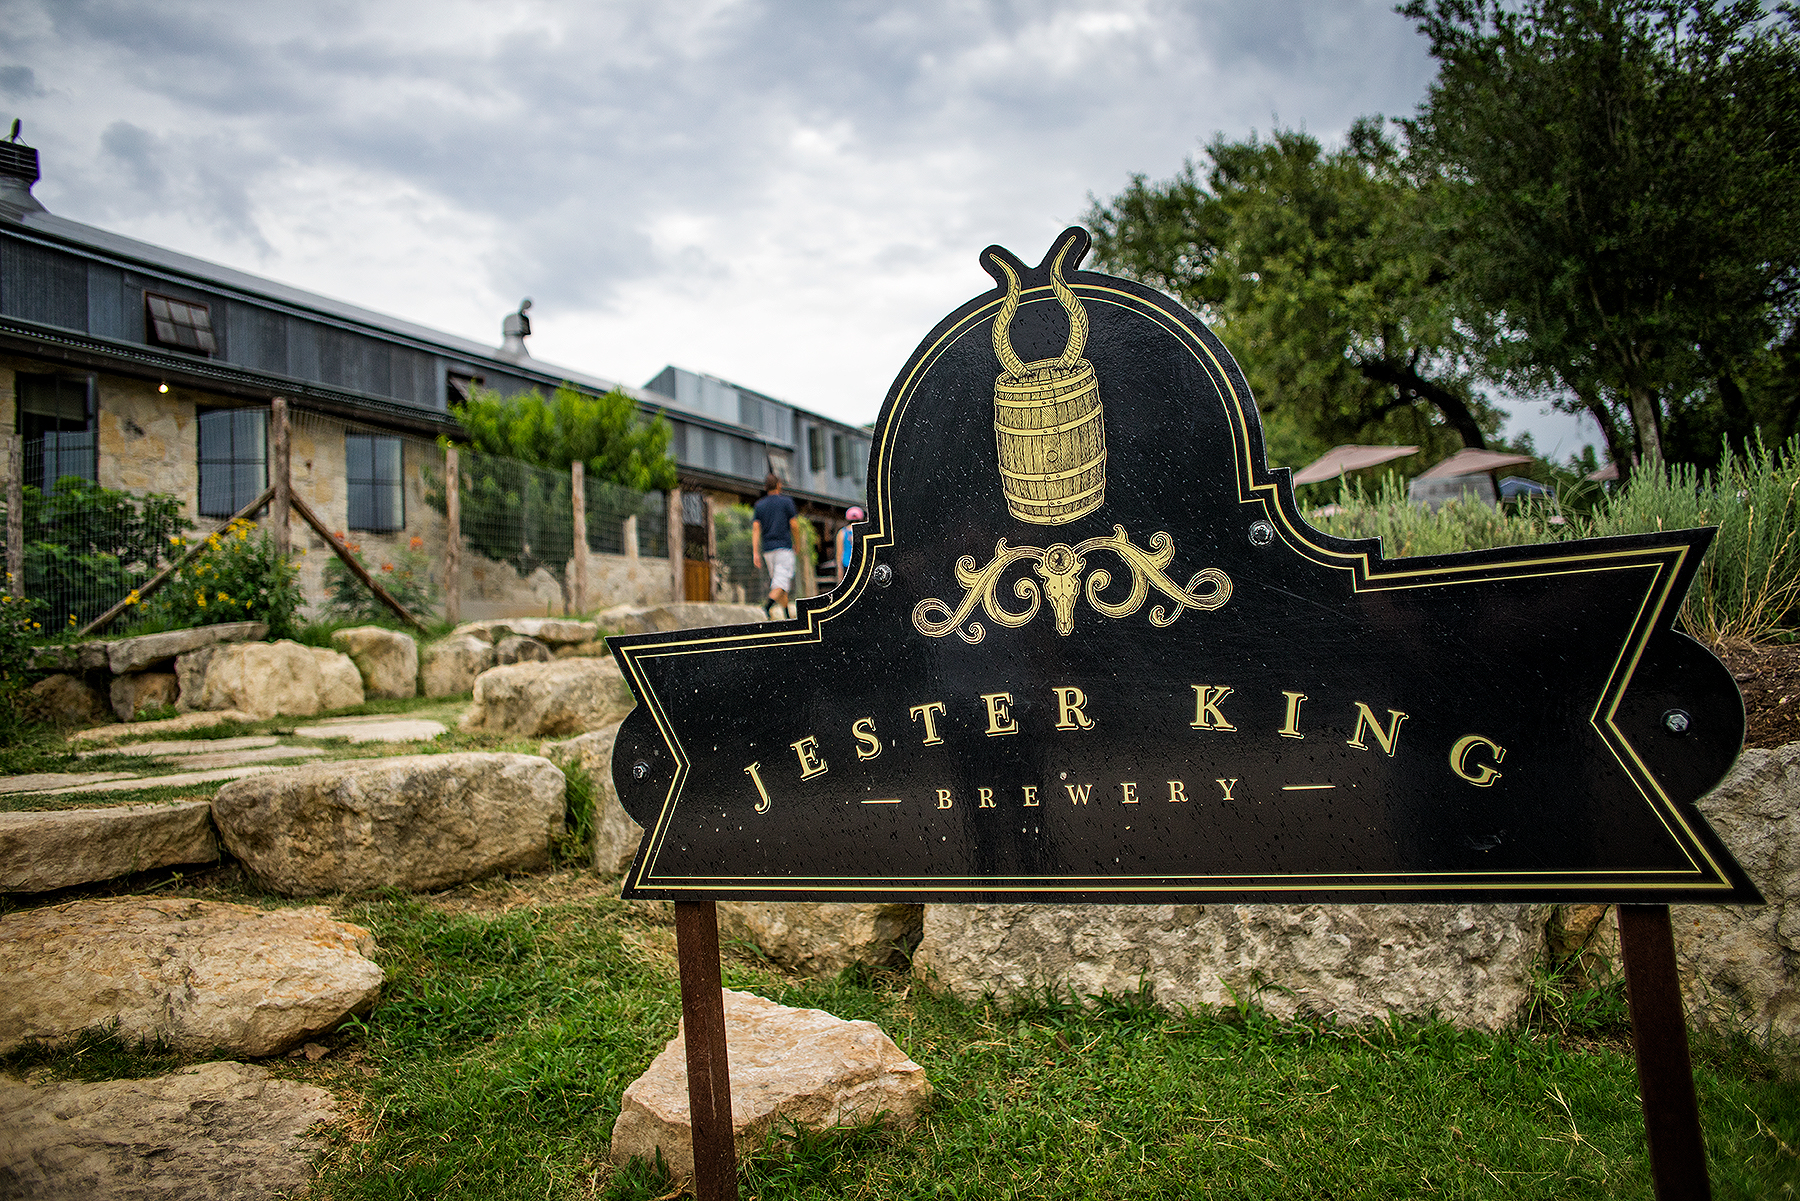 Visiting the Farmhouse: A Trip to Jester King